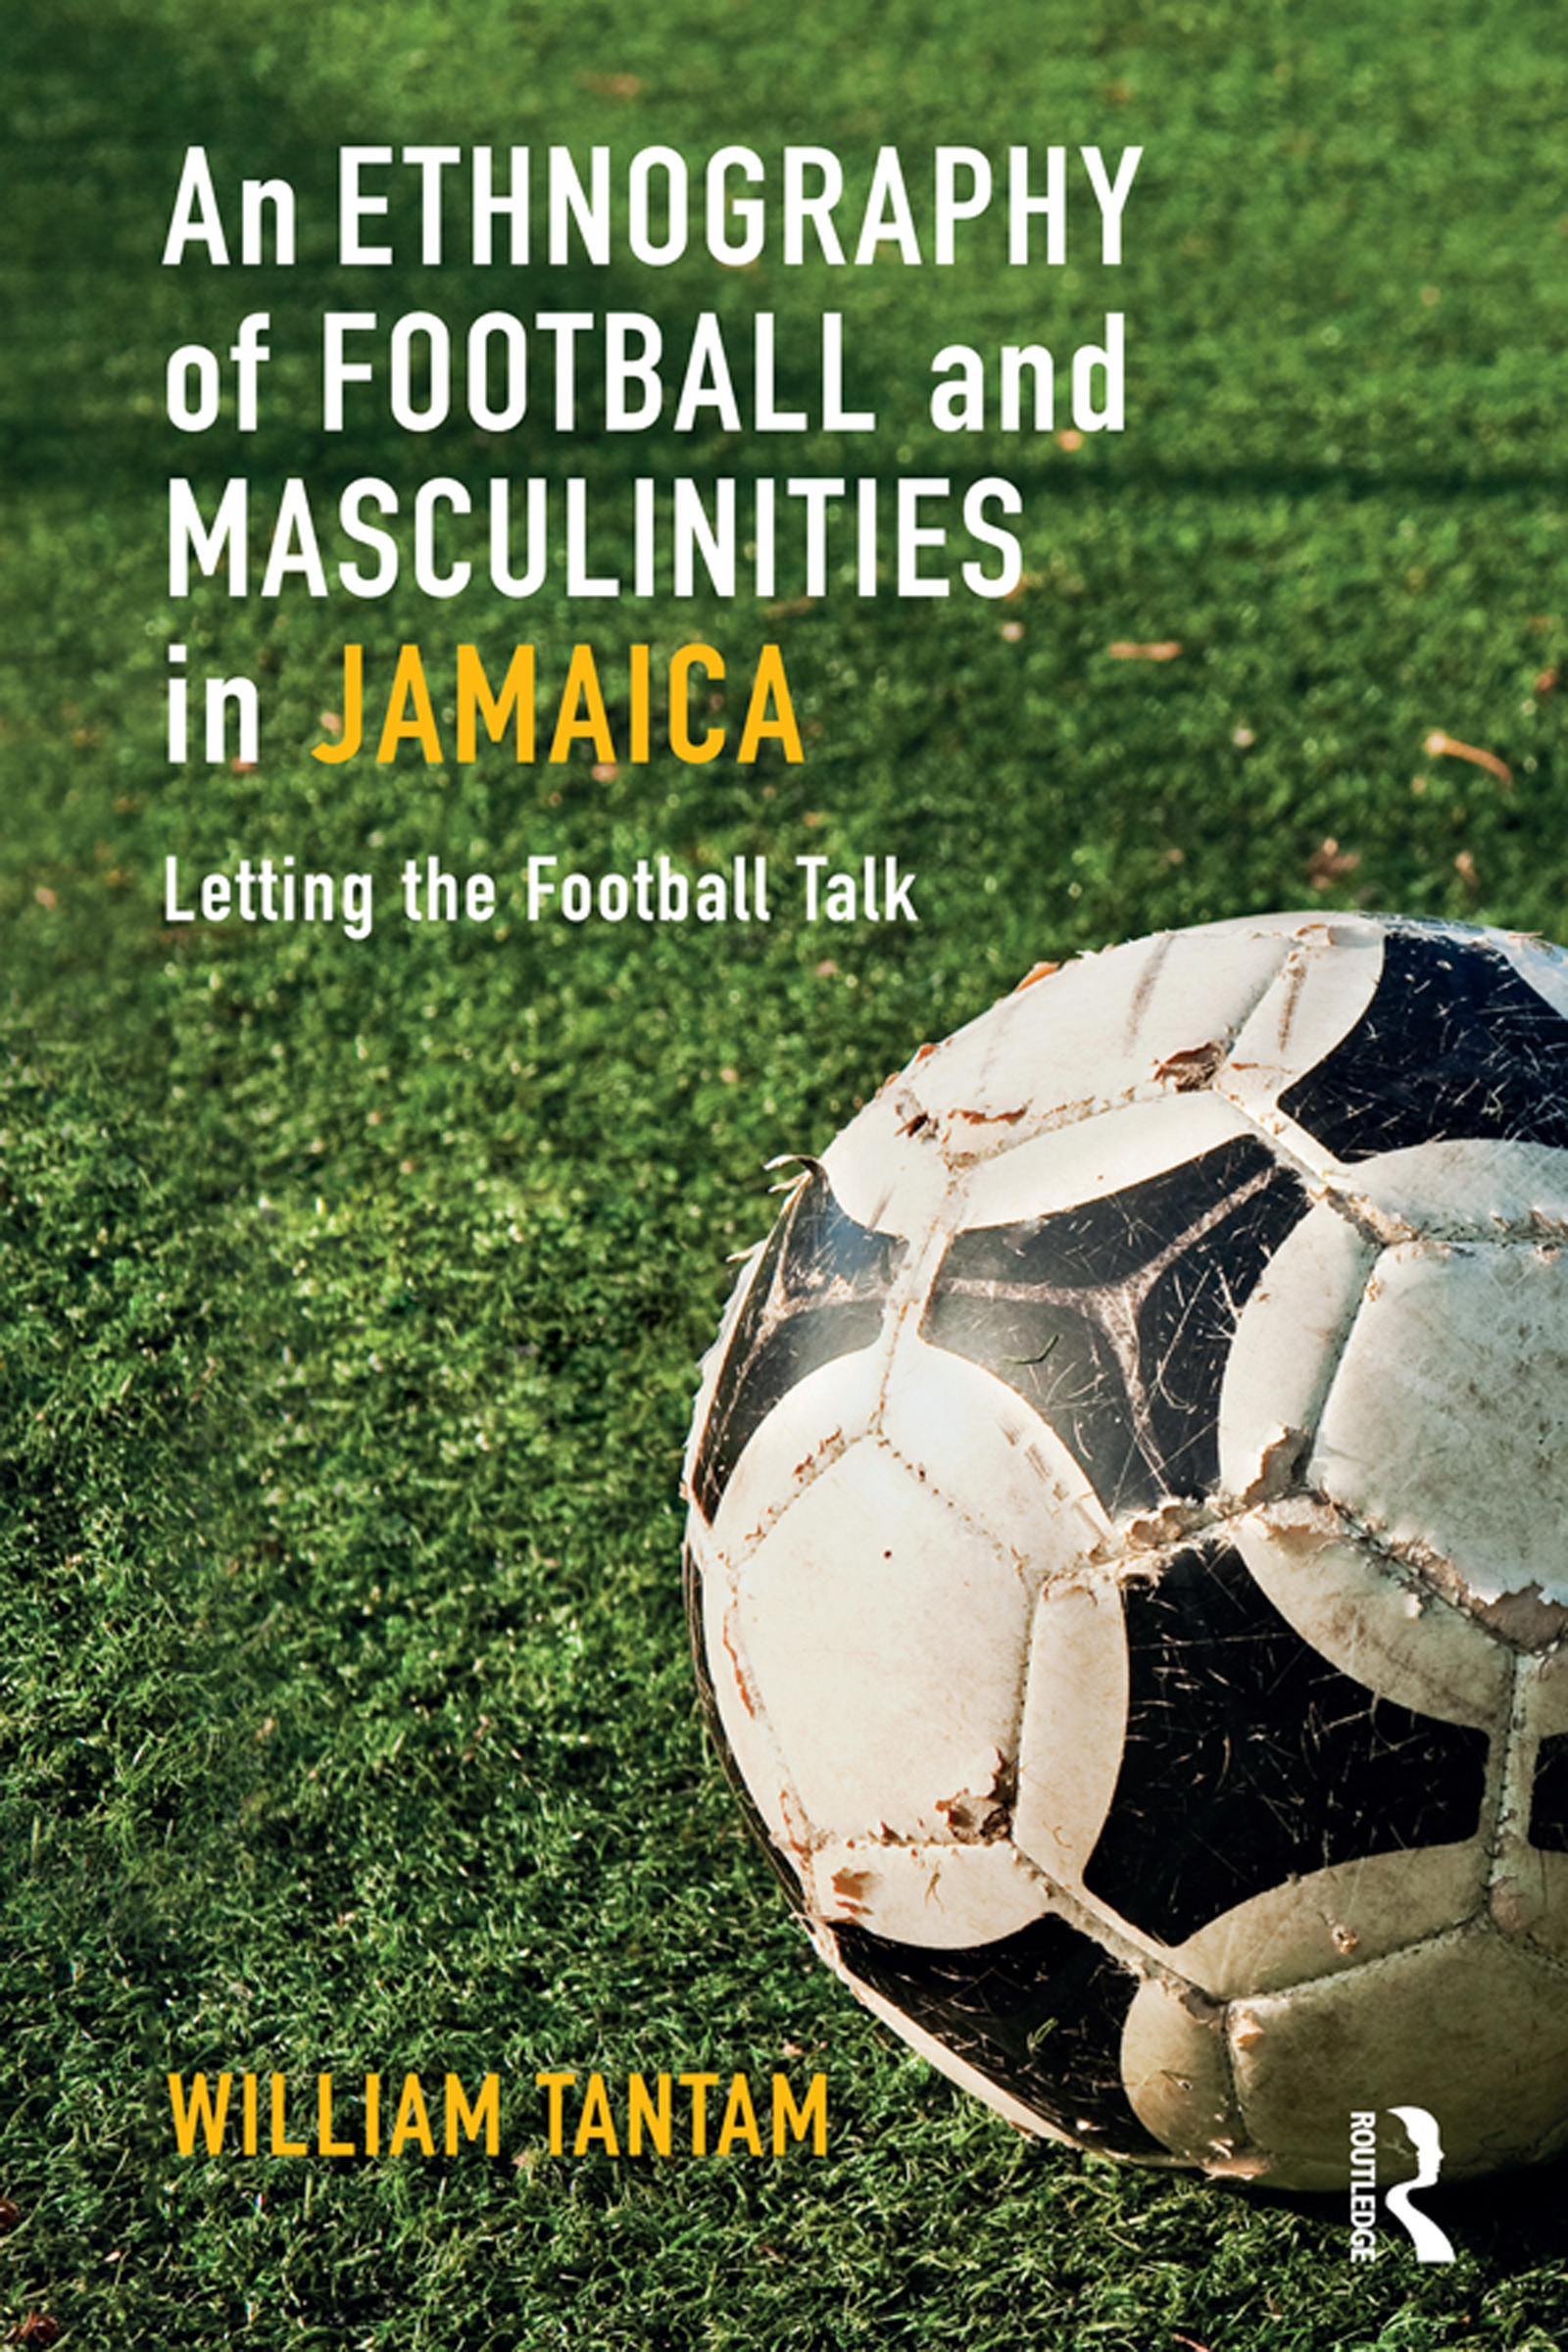 An Ethnography of Football and Masculinities in Jamaica